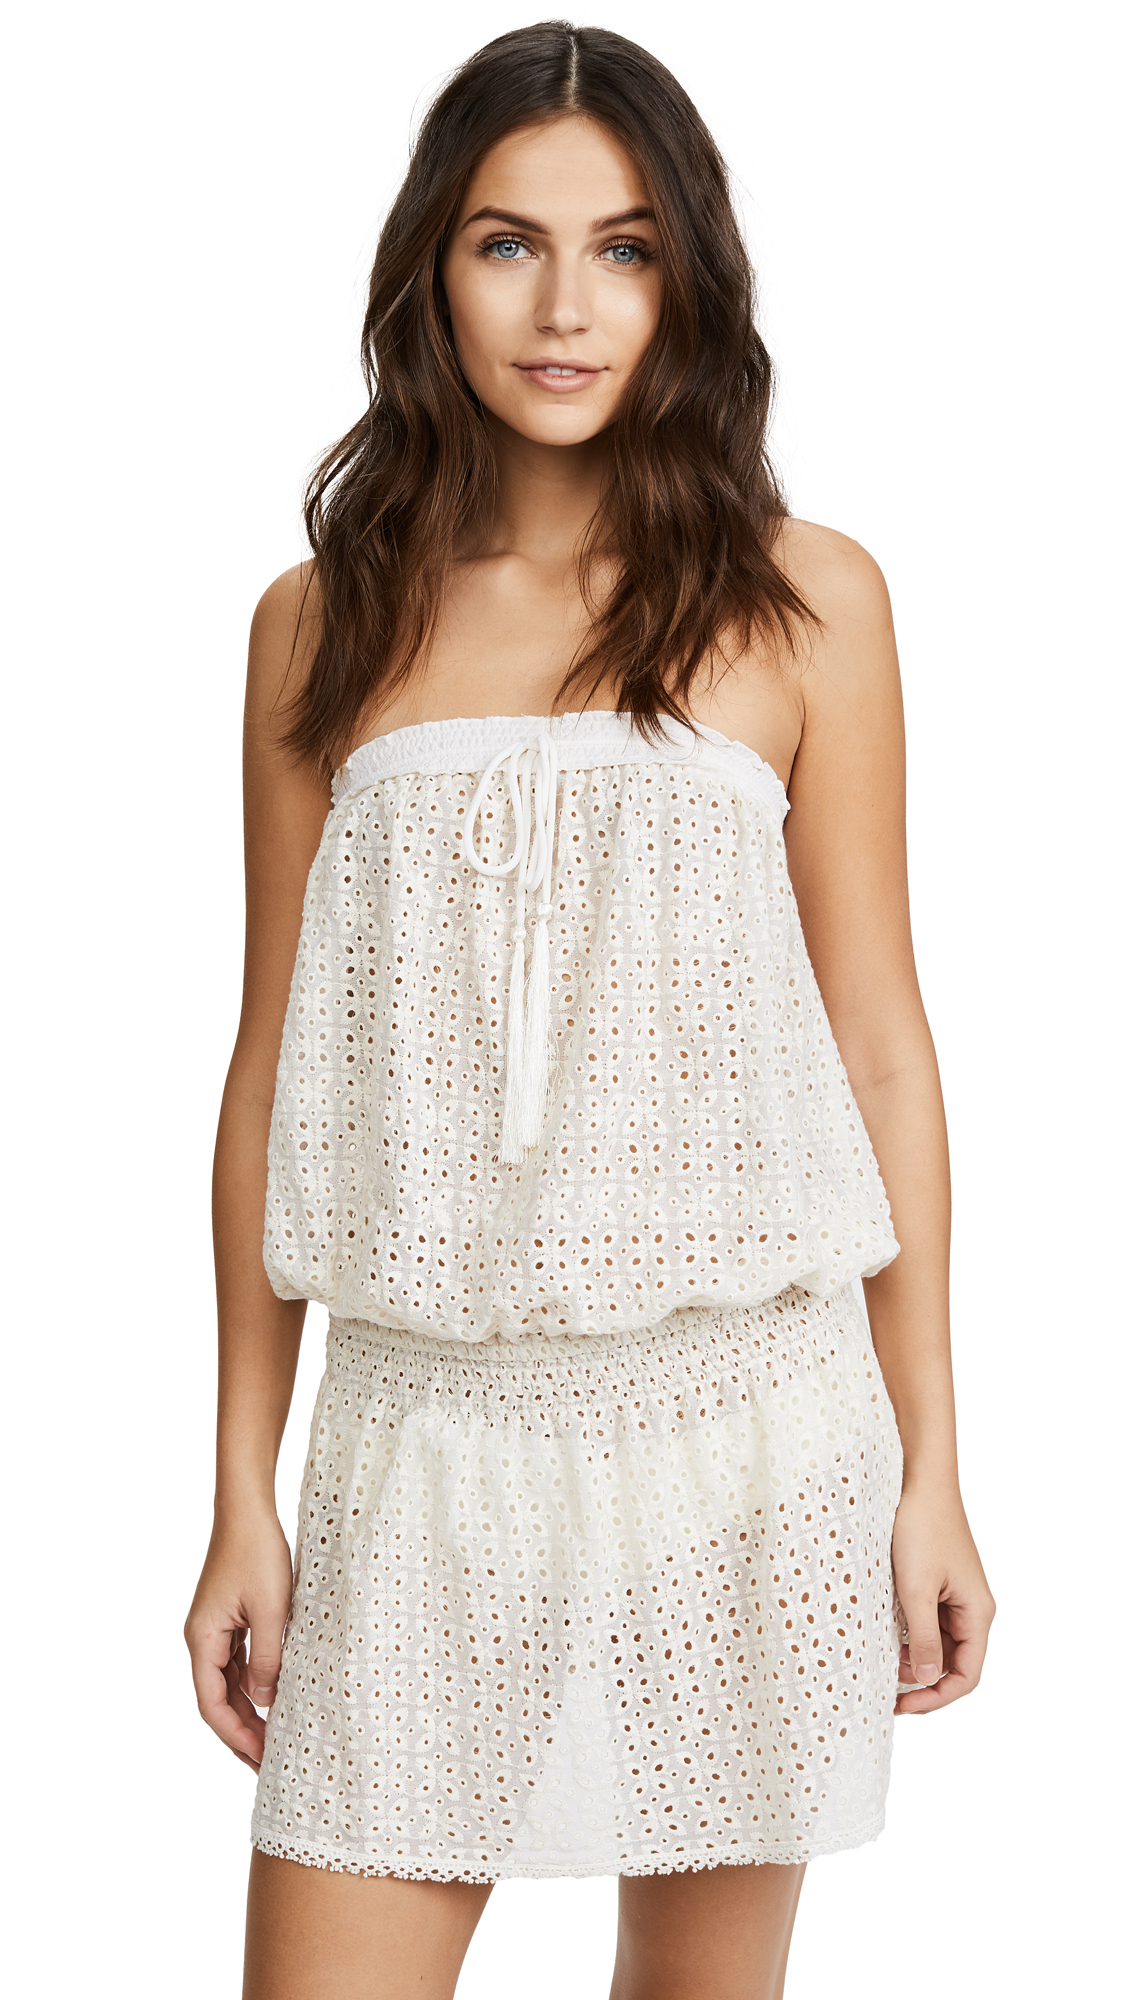 Melissa Odabash Adela Strapless Cover Up Dress - Cream